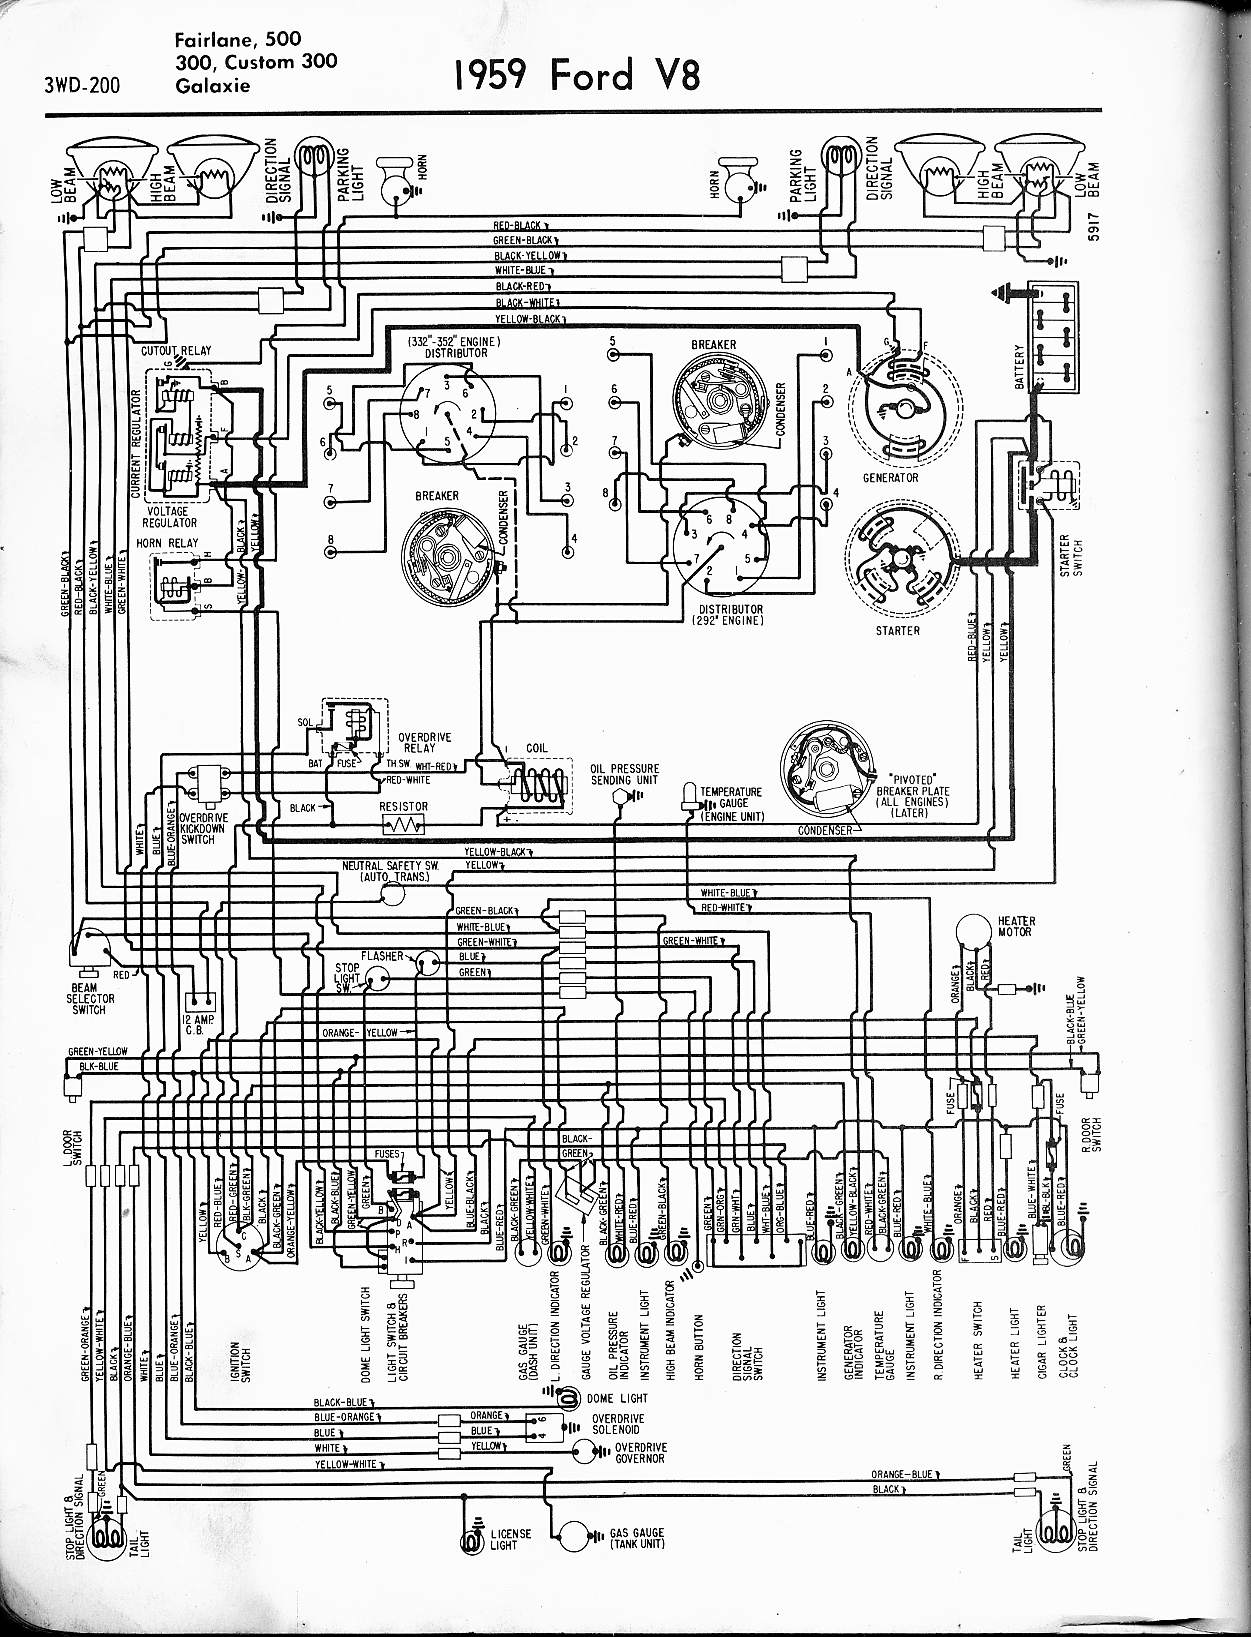 Electrical Wiring Diagram Of Ford F100 All About Books Passenger Compartment Fuse Box Mack 57 65 Diagrams Rh Oldcarmanualproject Com